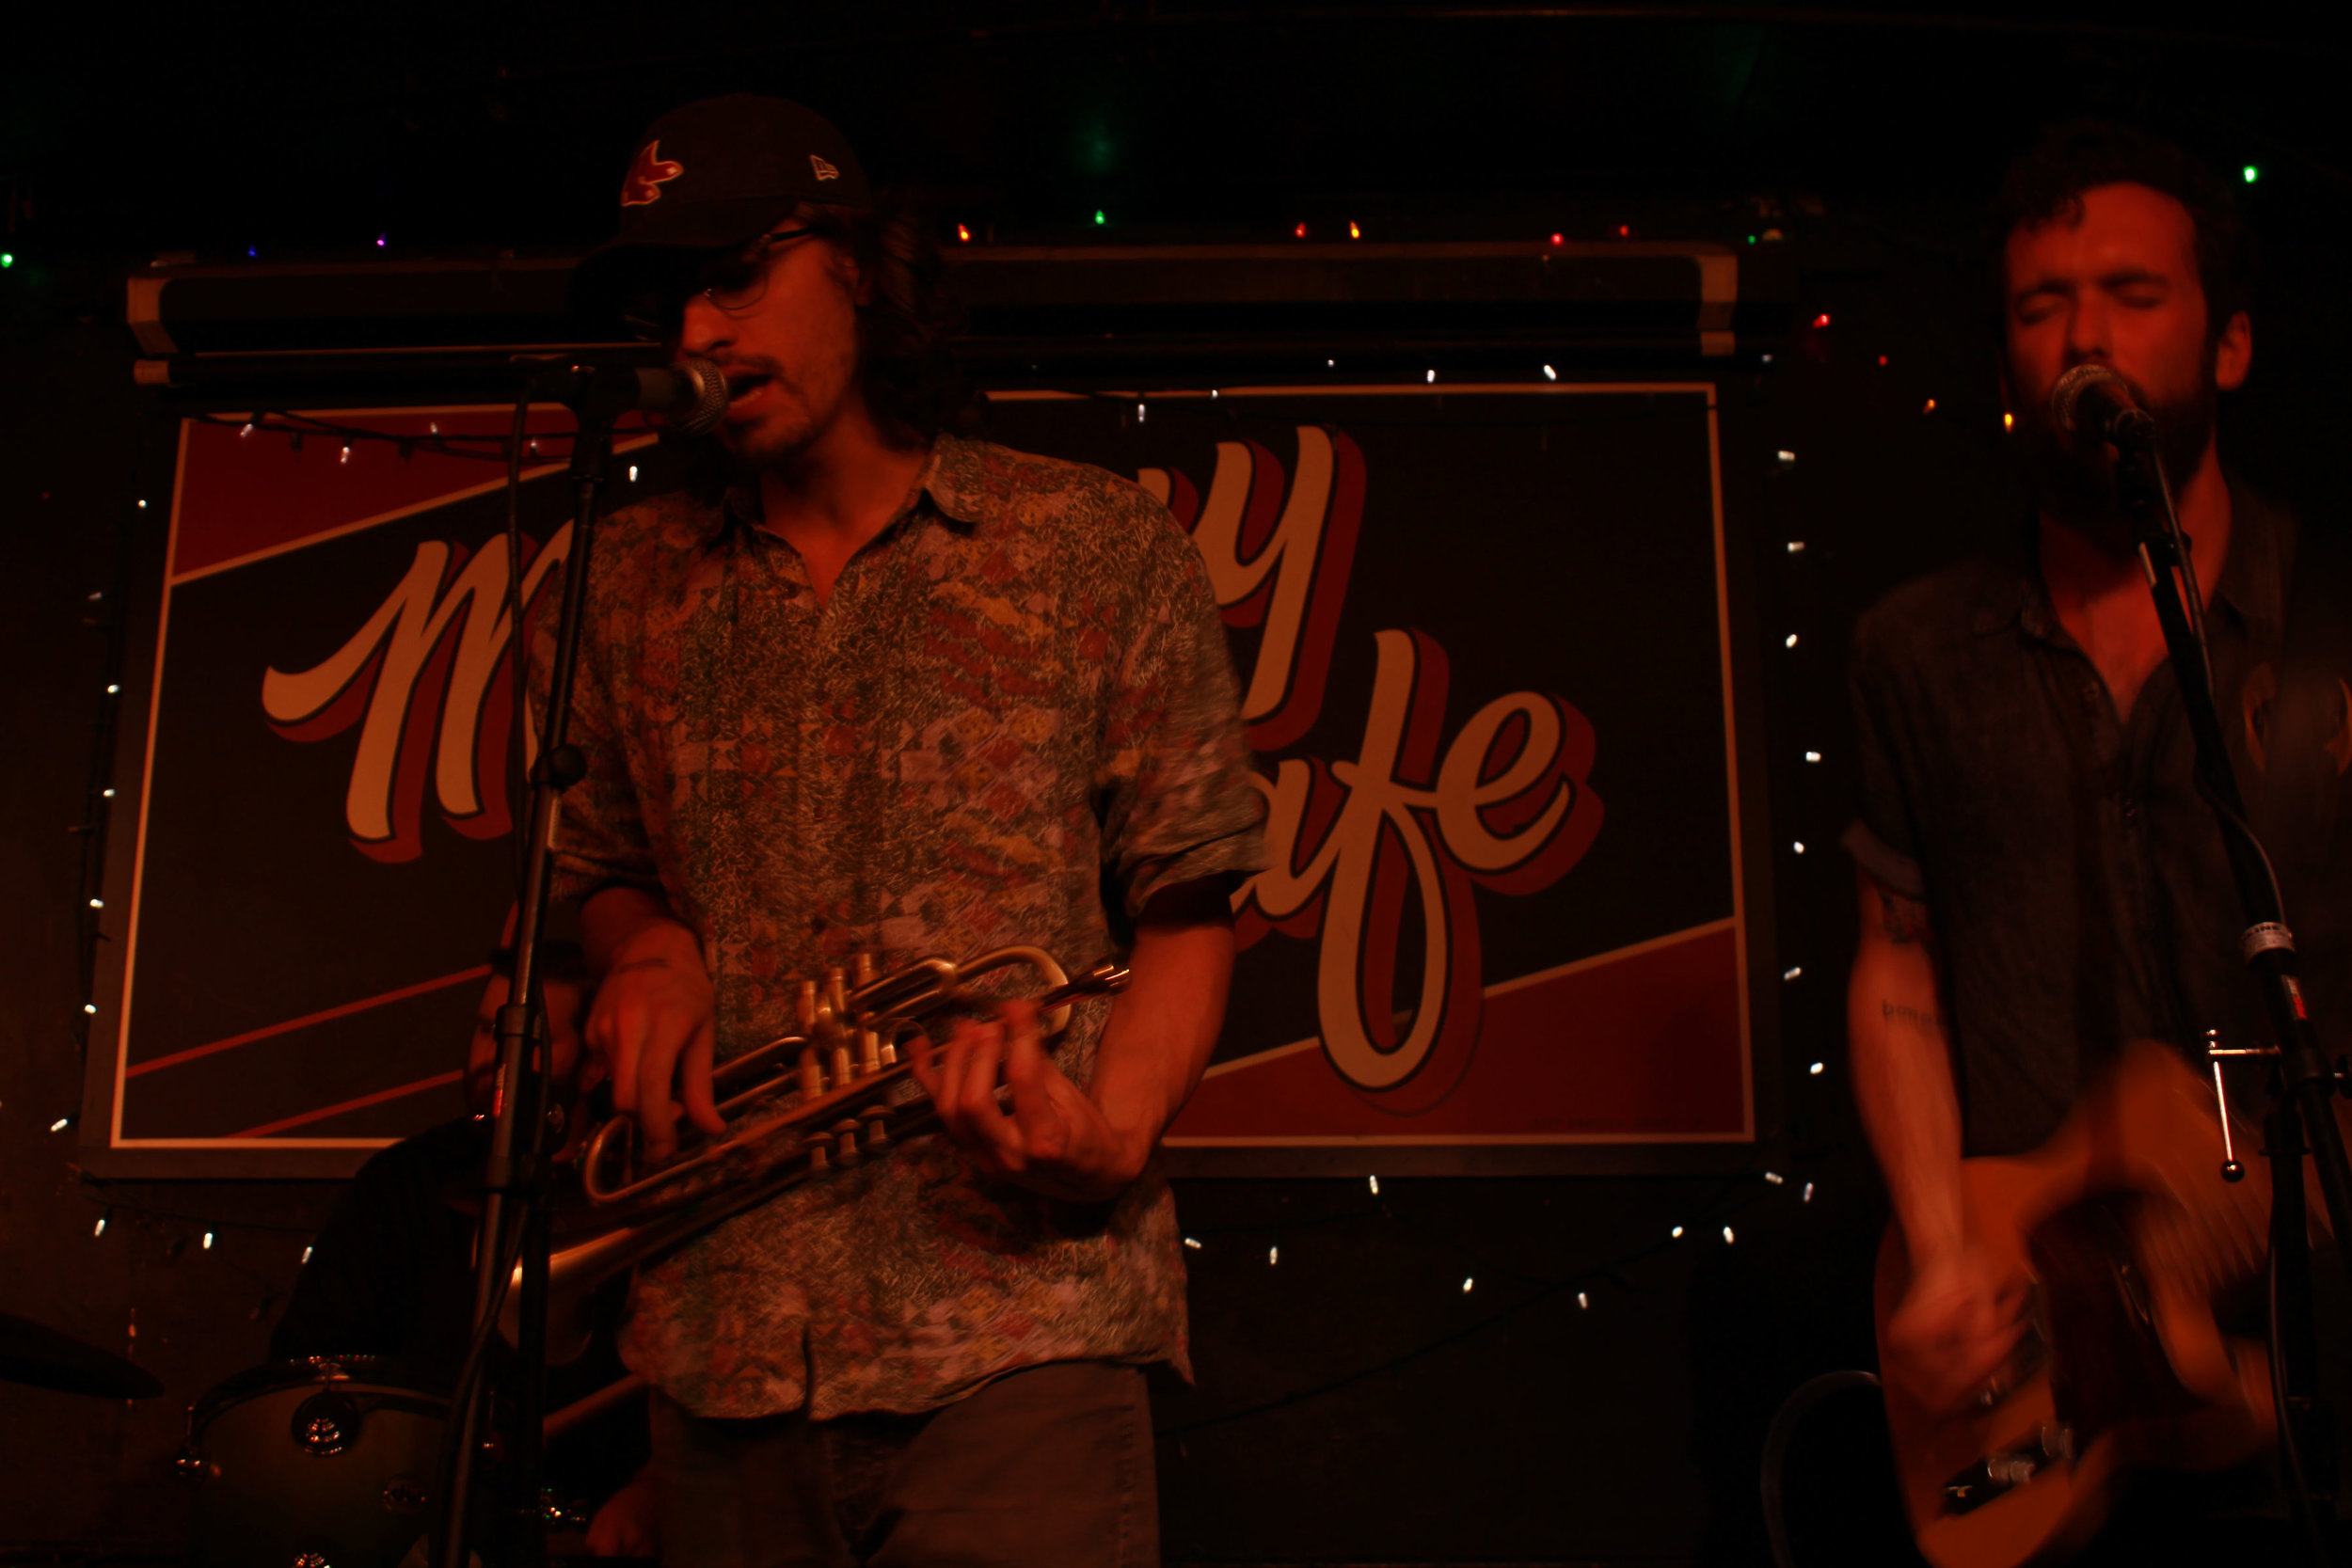 10/6 Midway Cafe